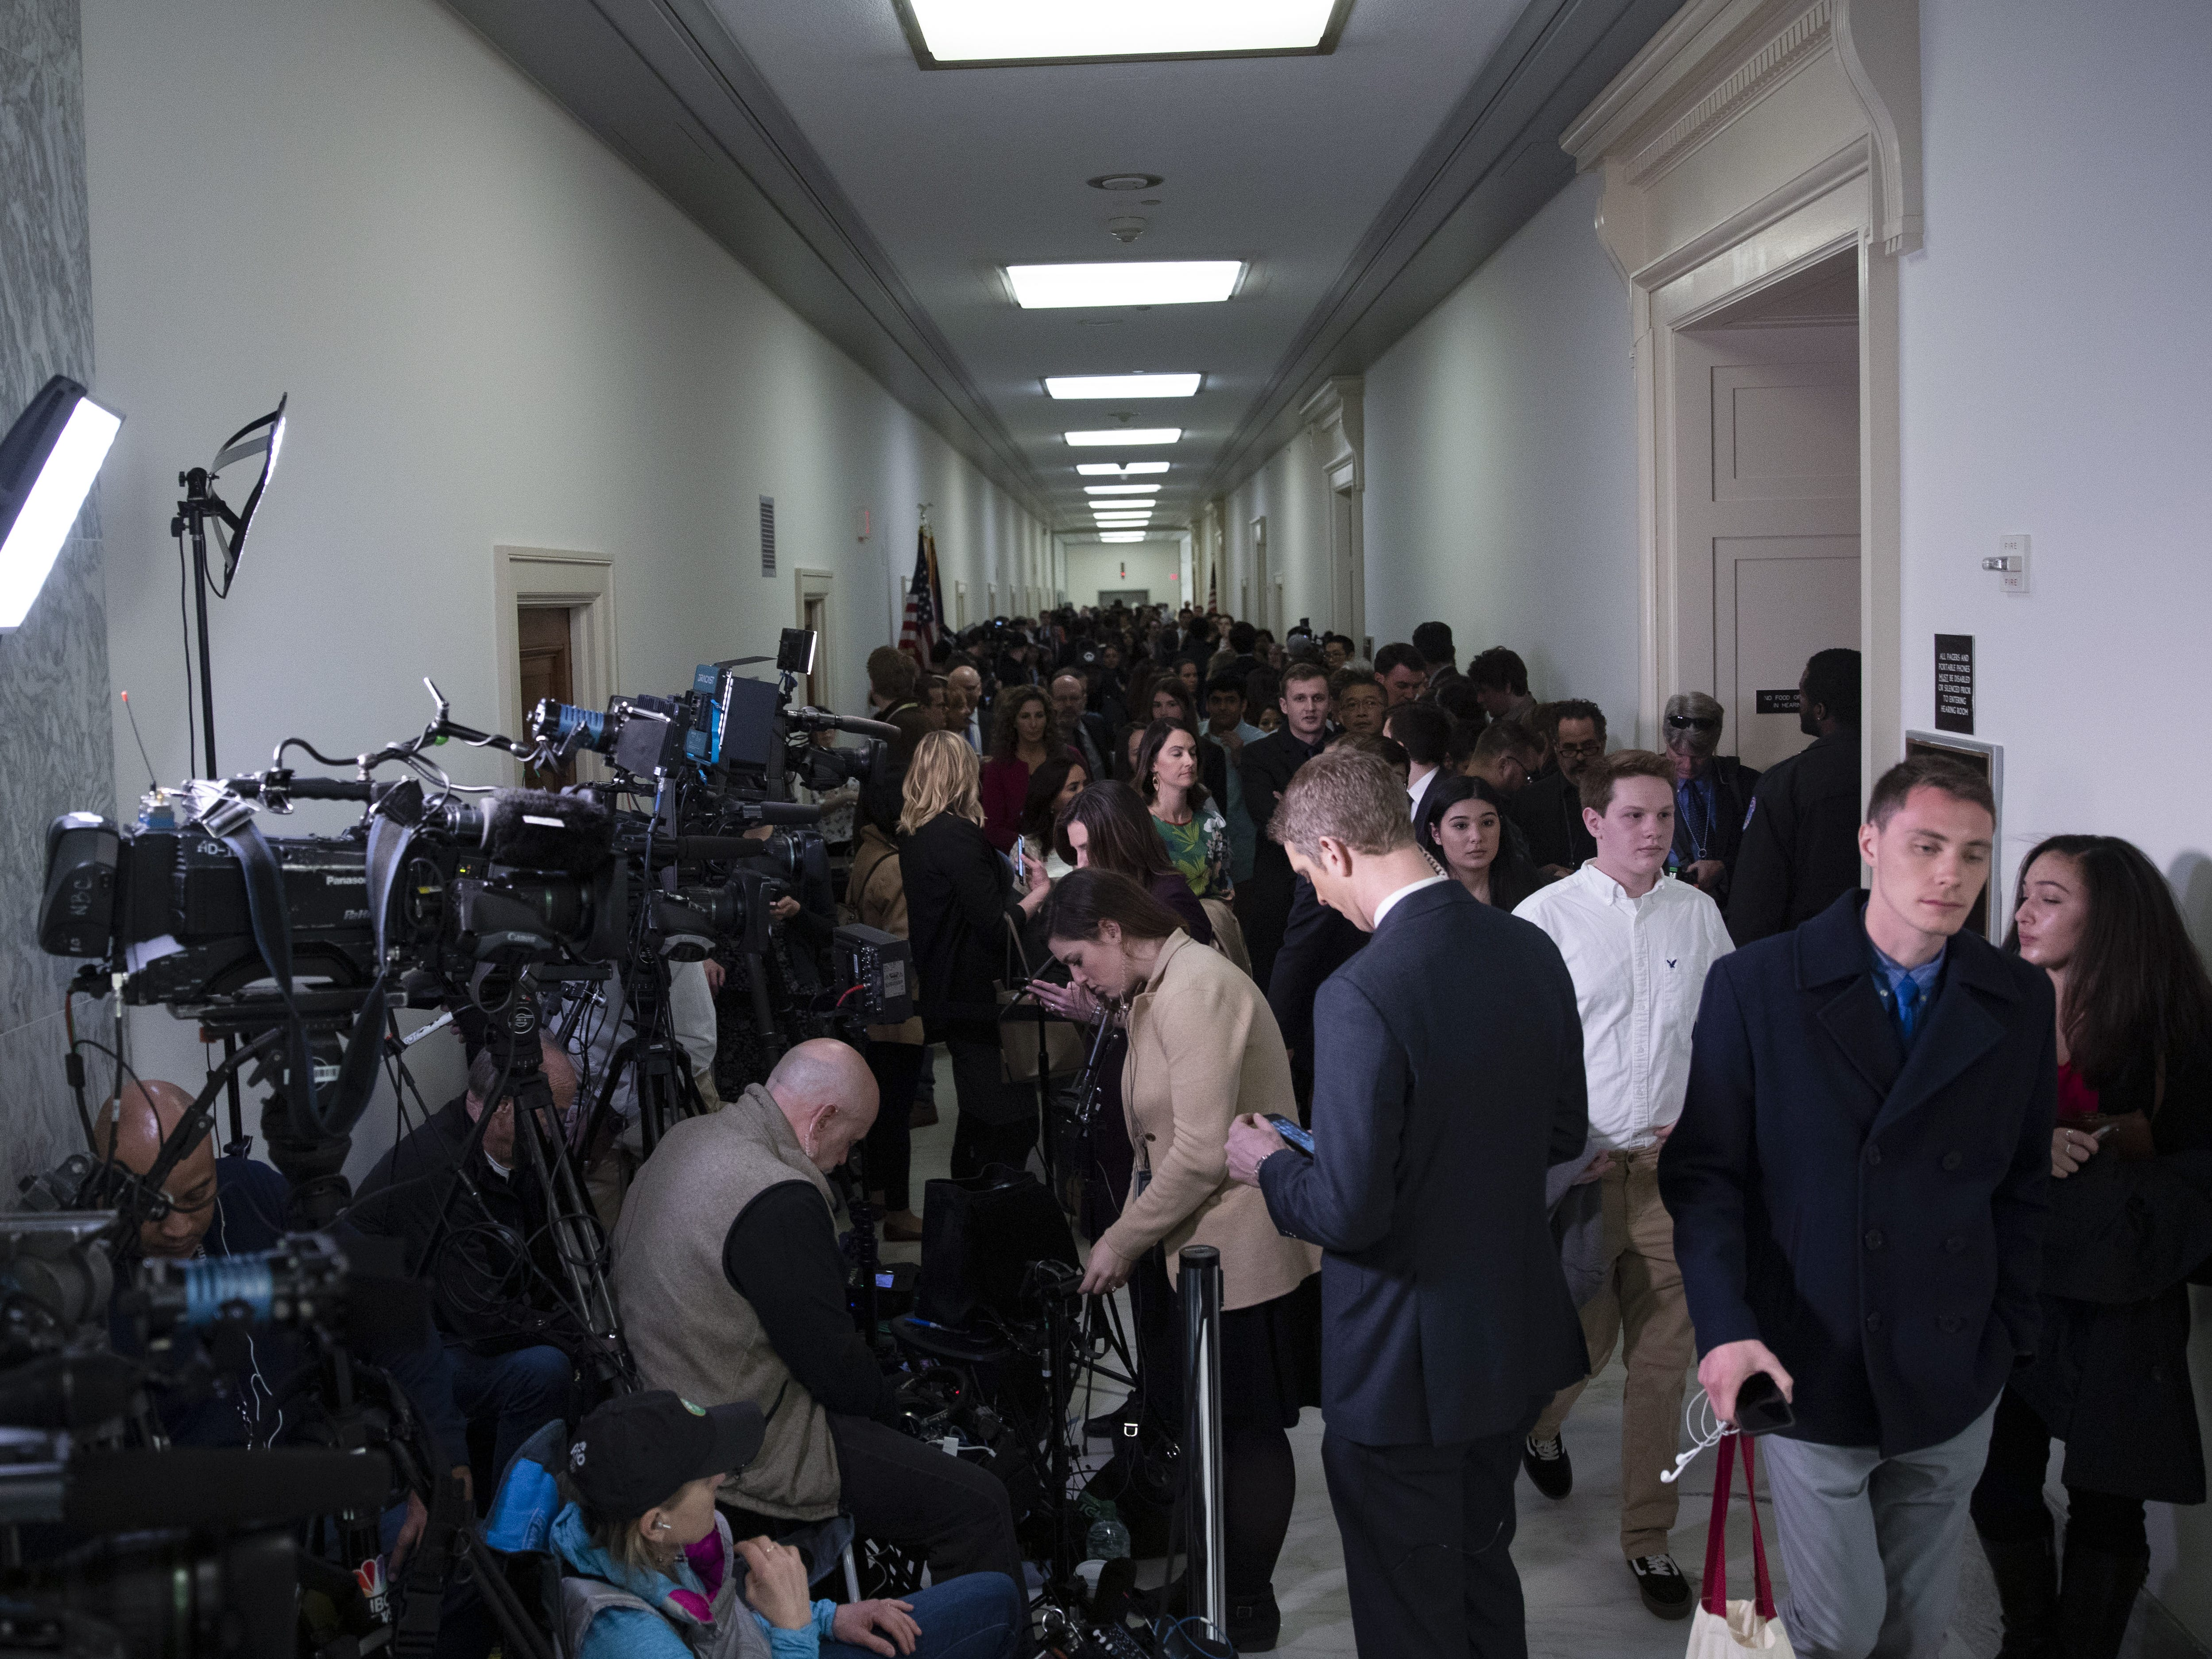 Media and guests pack the area outside the hearing where Michael Cohen, former attorney and fixer for President Donald Trump is testifying before the House Oversight Committee on in Washington, DC.